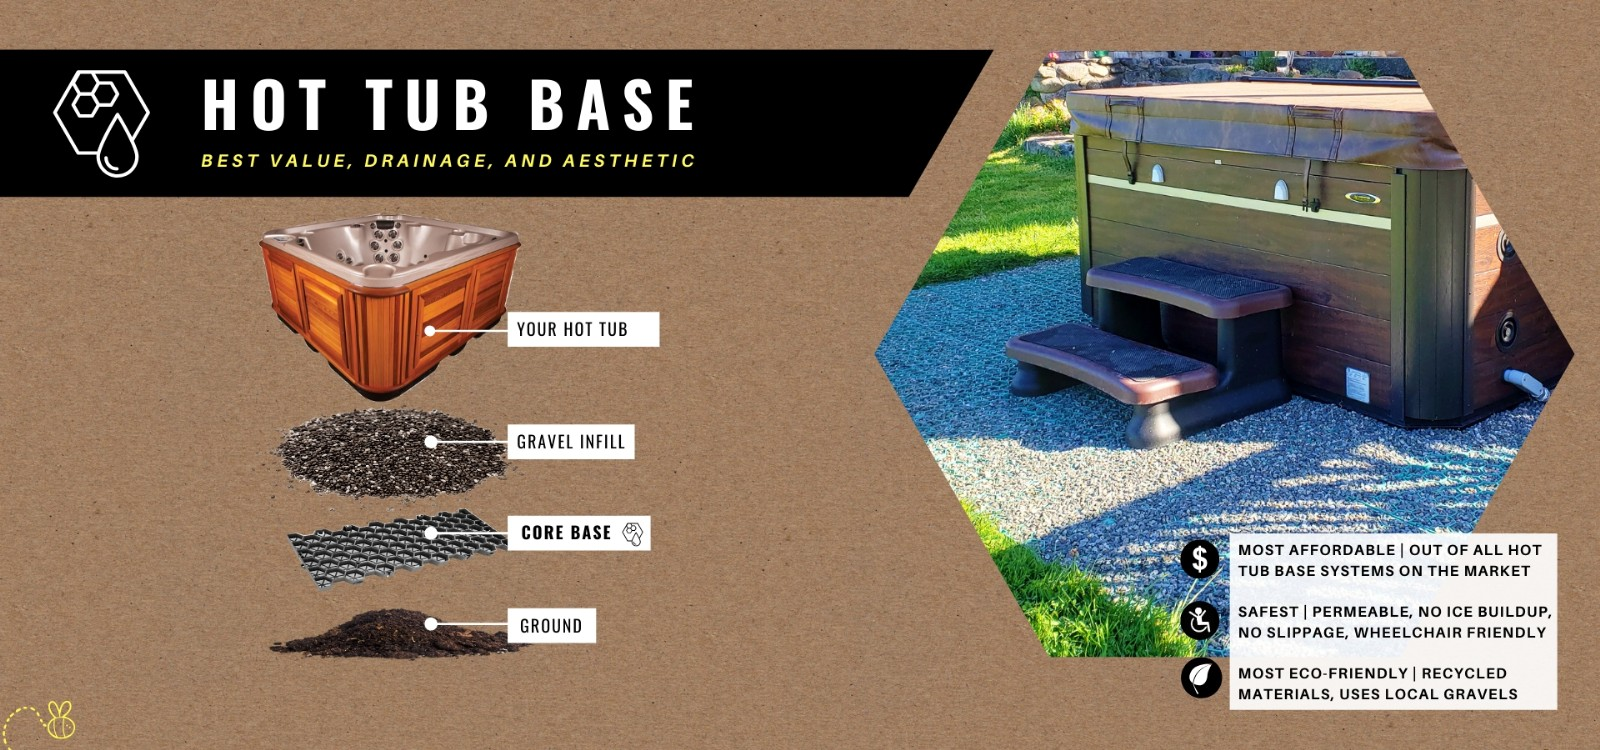 Core Foundation Kits Are Ideal For A Stable Support Base For Your Hot Tub